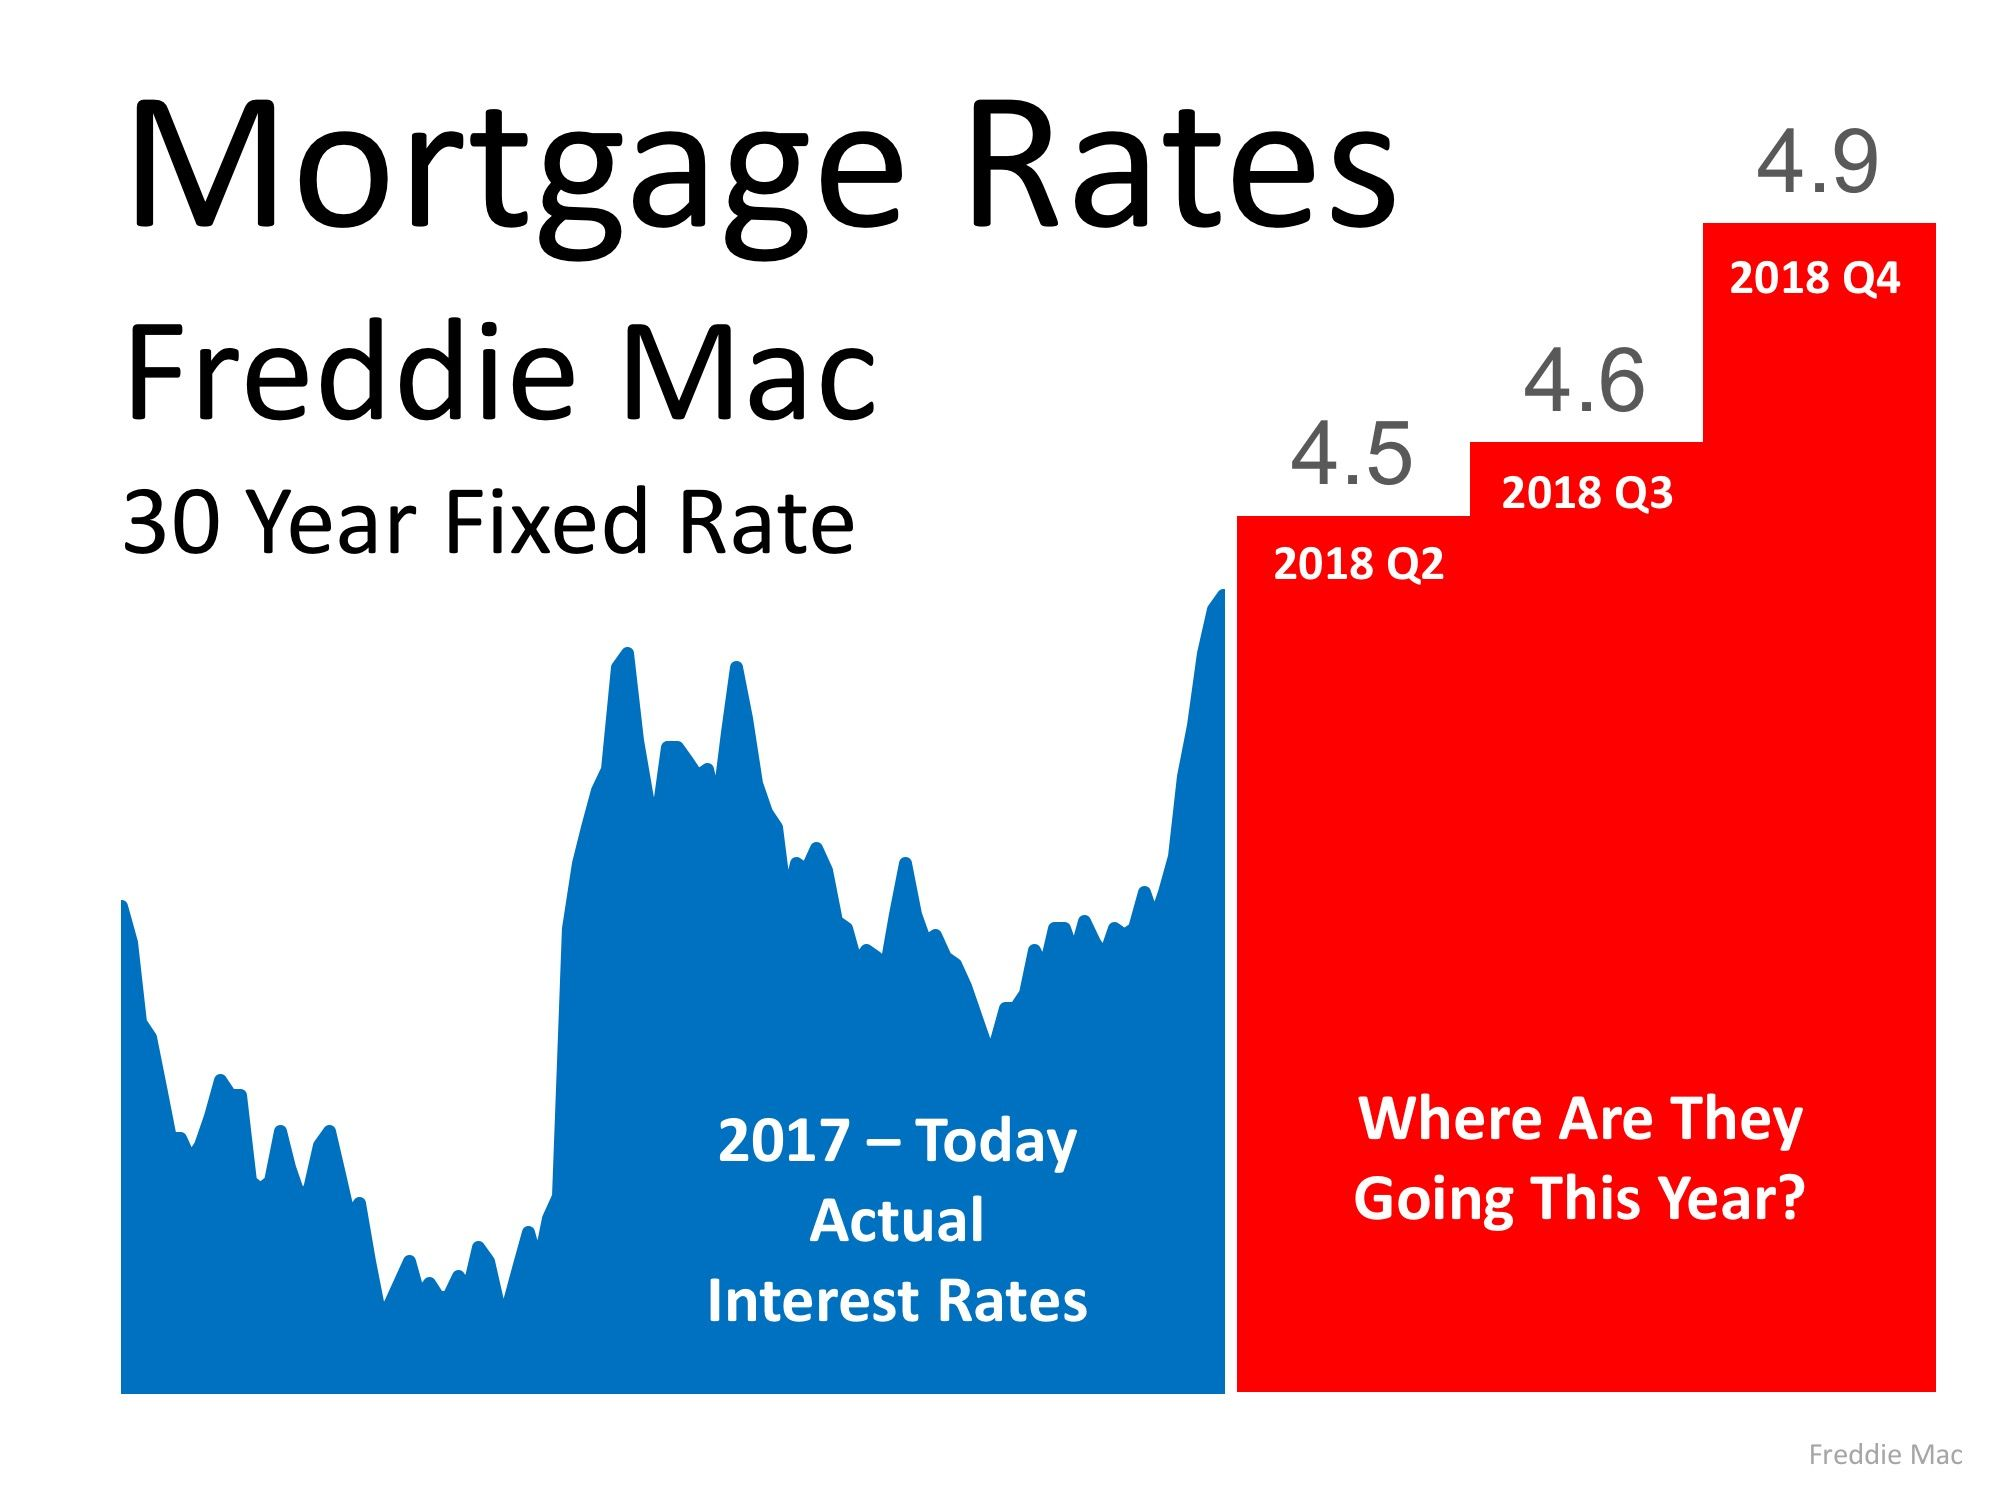 Interest Rates For A 30 Year Fixed Rate Mortgage Have Climbed From